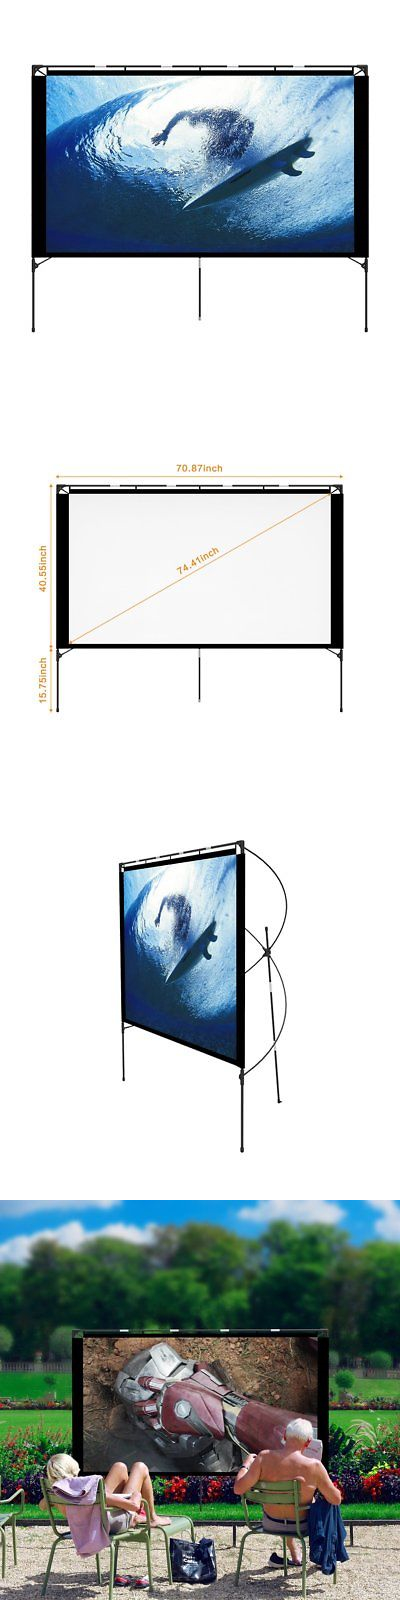 Projection Screens and Material: Outdoor Projector Screen ...